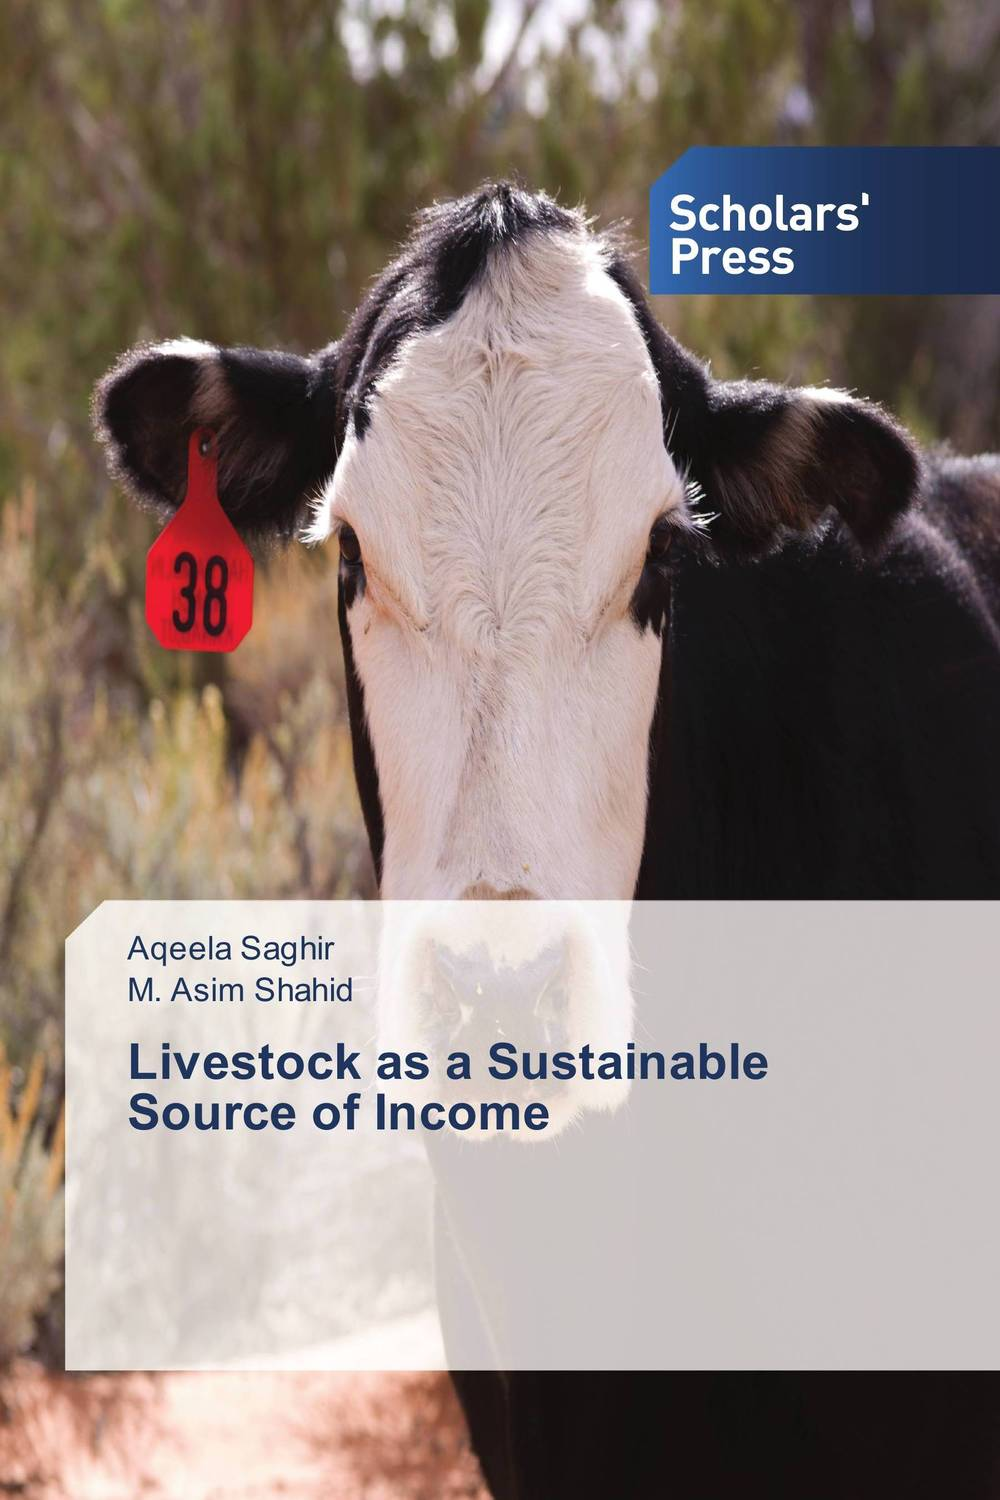 Livestock as a Sustainable Source of Income simon lack a bonds are not forever the crisis facing fixed income investors